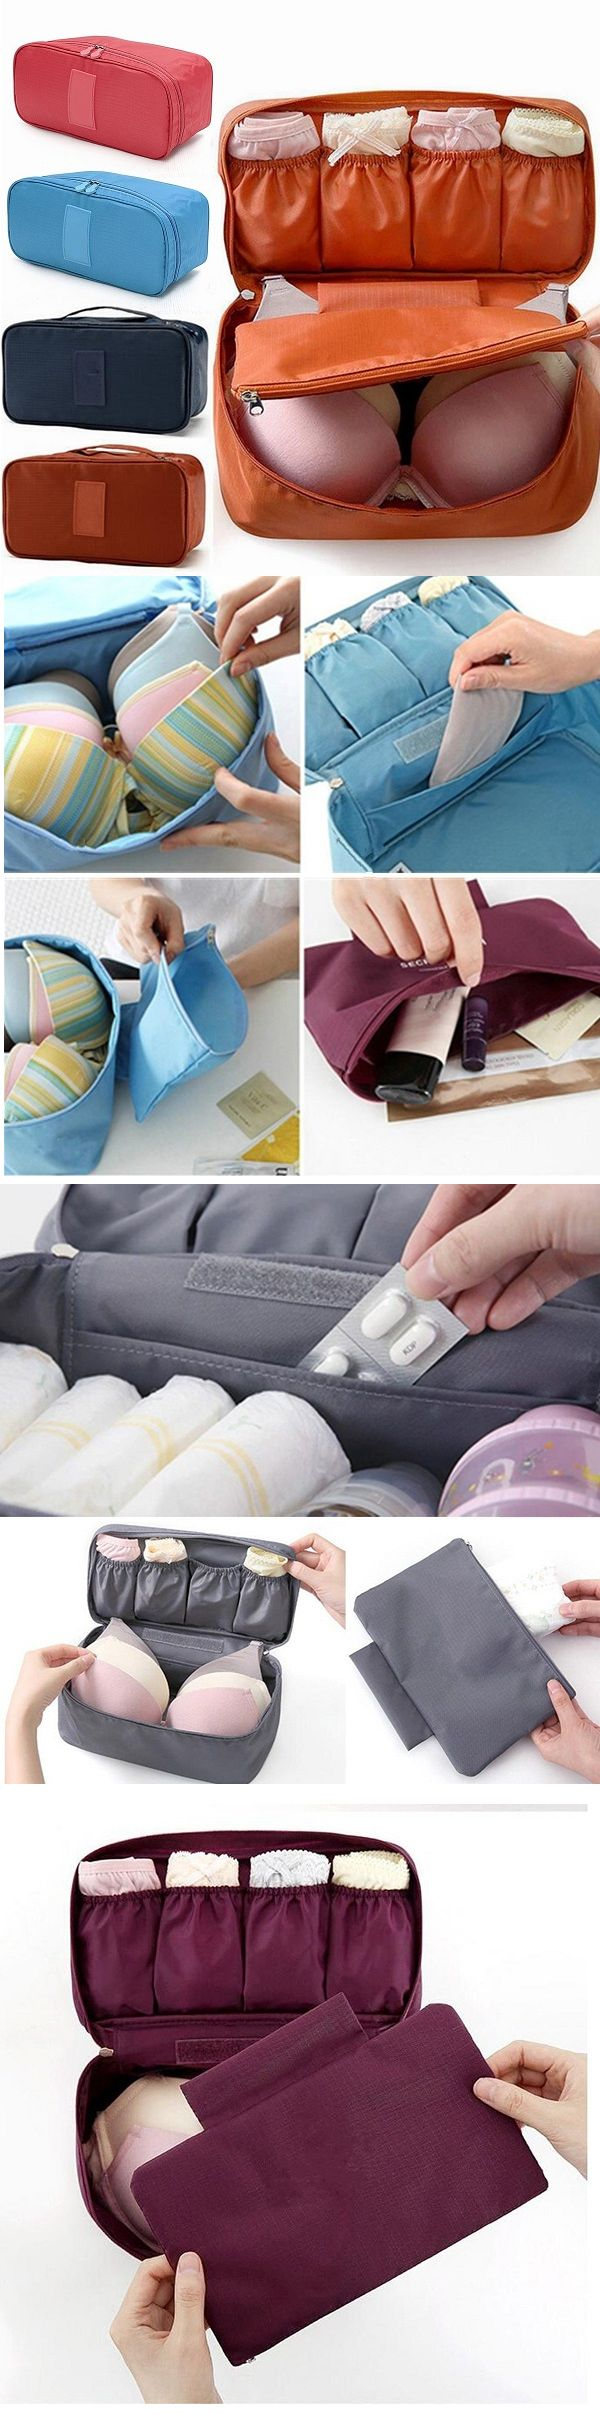 US$3.99 Women Multifunction Waterproof Tidy Storage Bag Must-have Wash Cosmetic Bag Portable